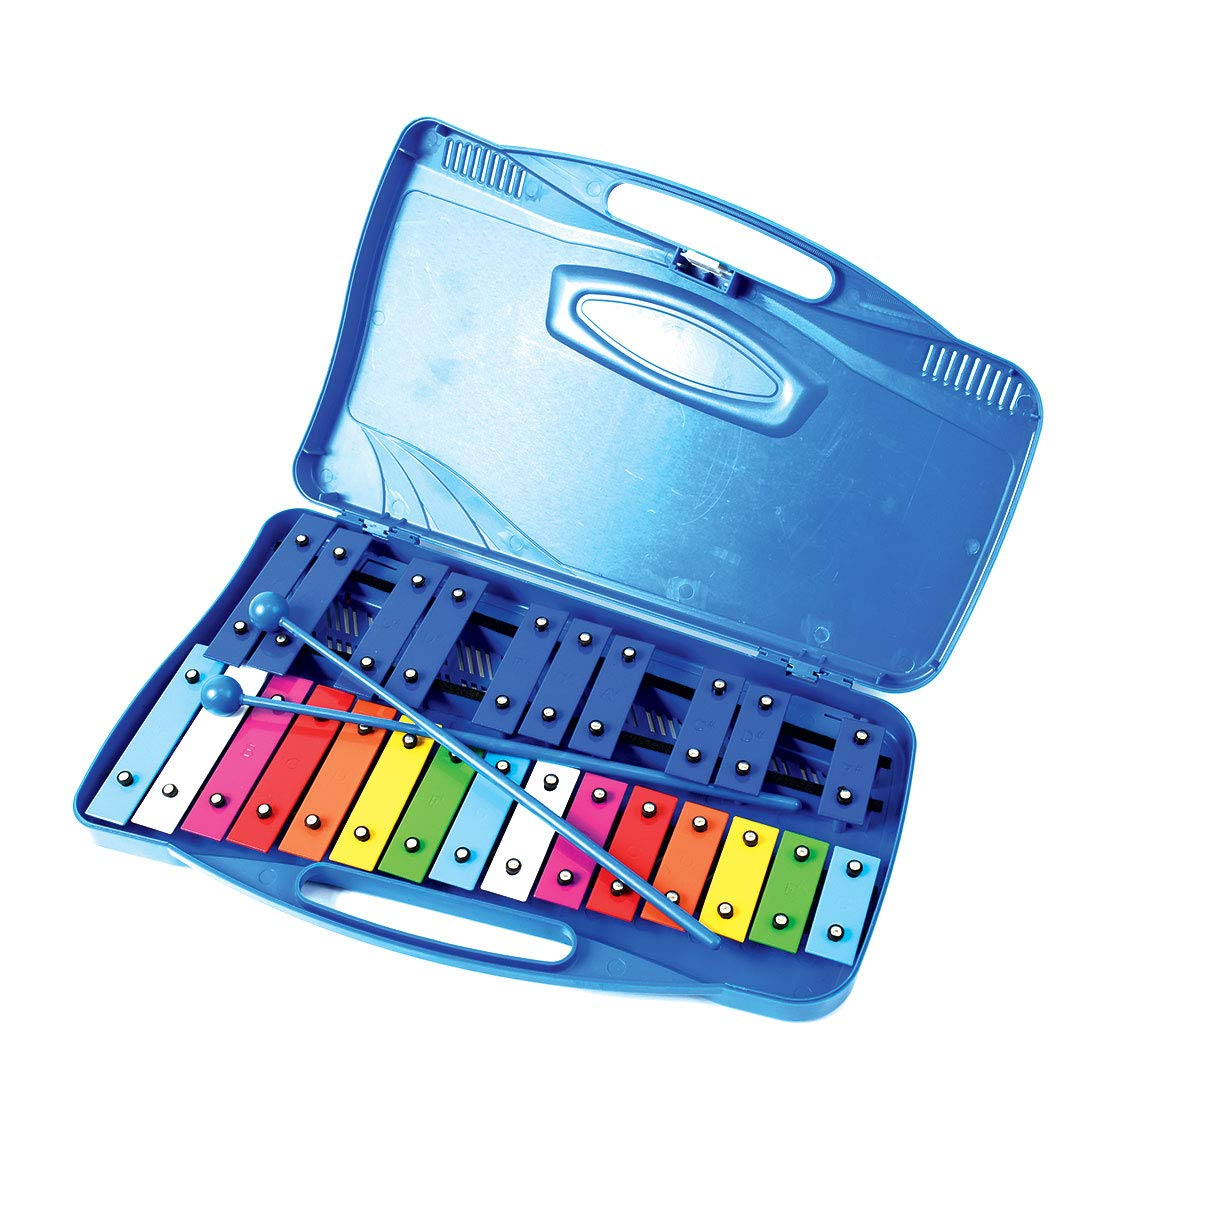 Professional Blue Plastic Soprano Glockenspiel Xylophone with 25 Metal Keys in Plastic Case - Includes 2 Plastic Beaters